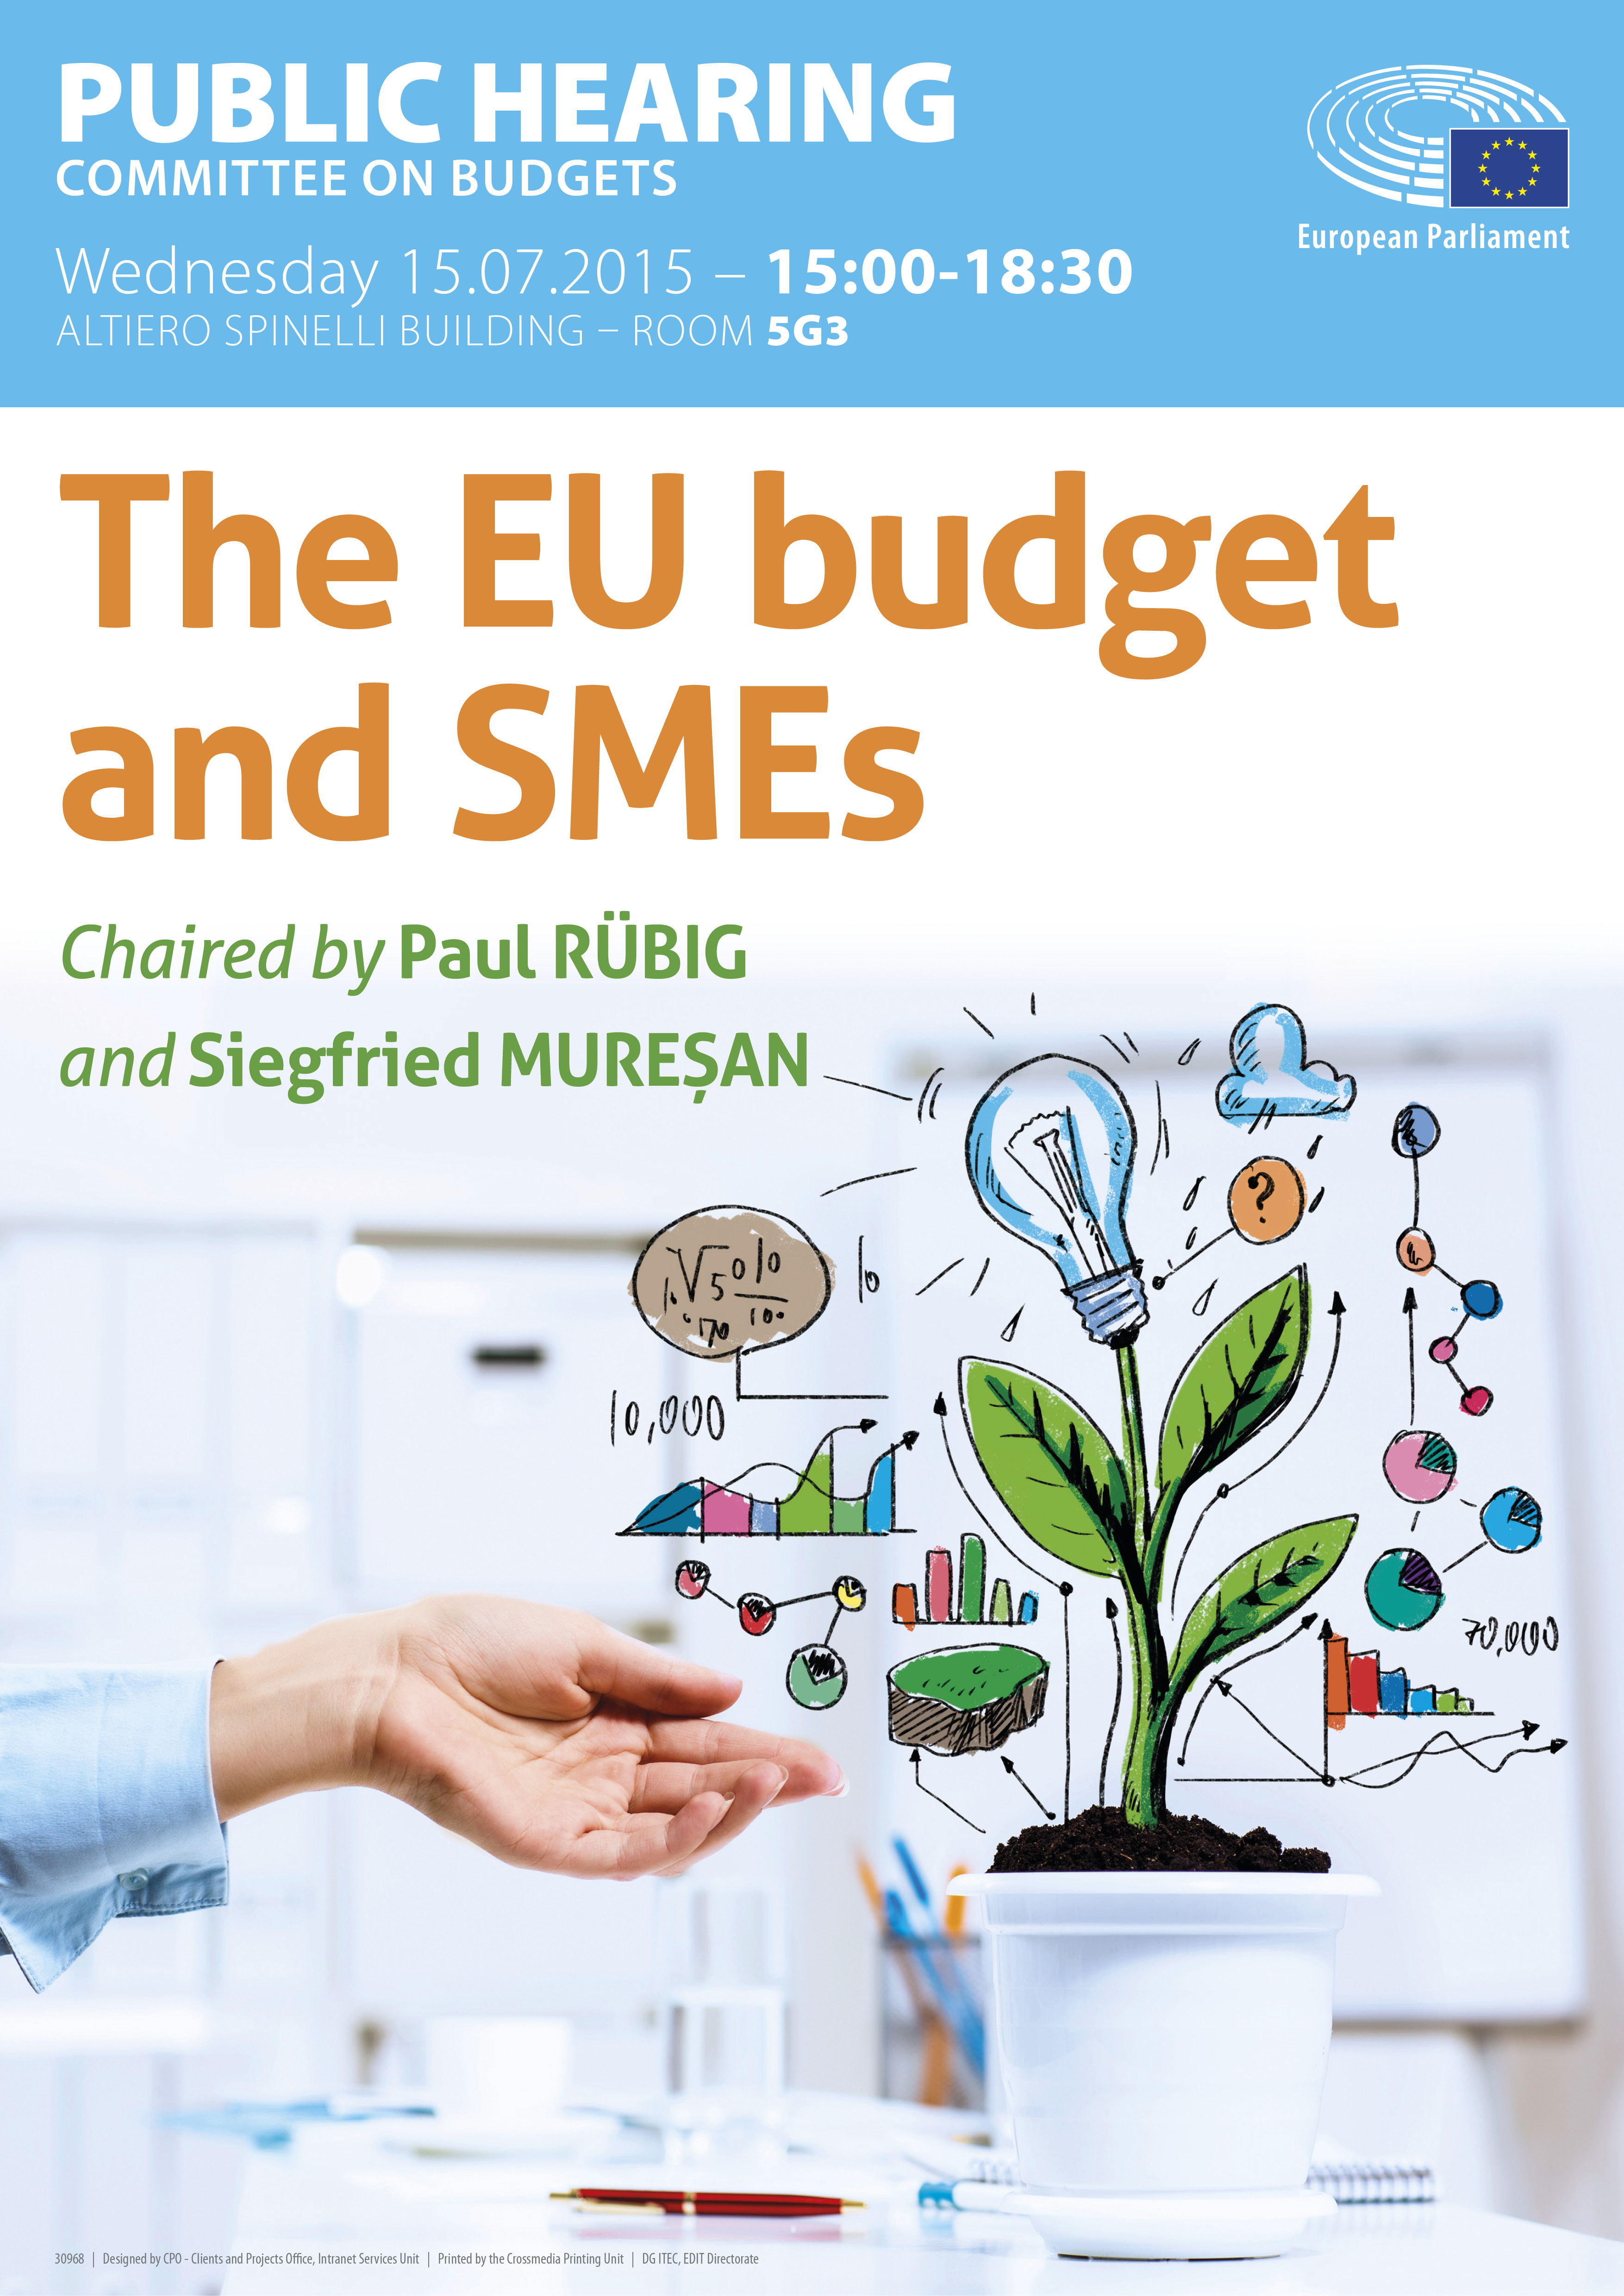 The EU budget and SMEs